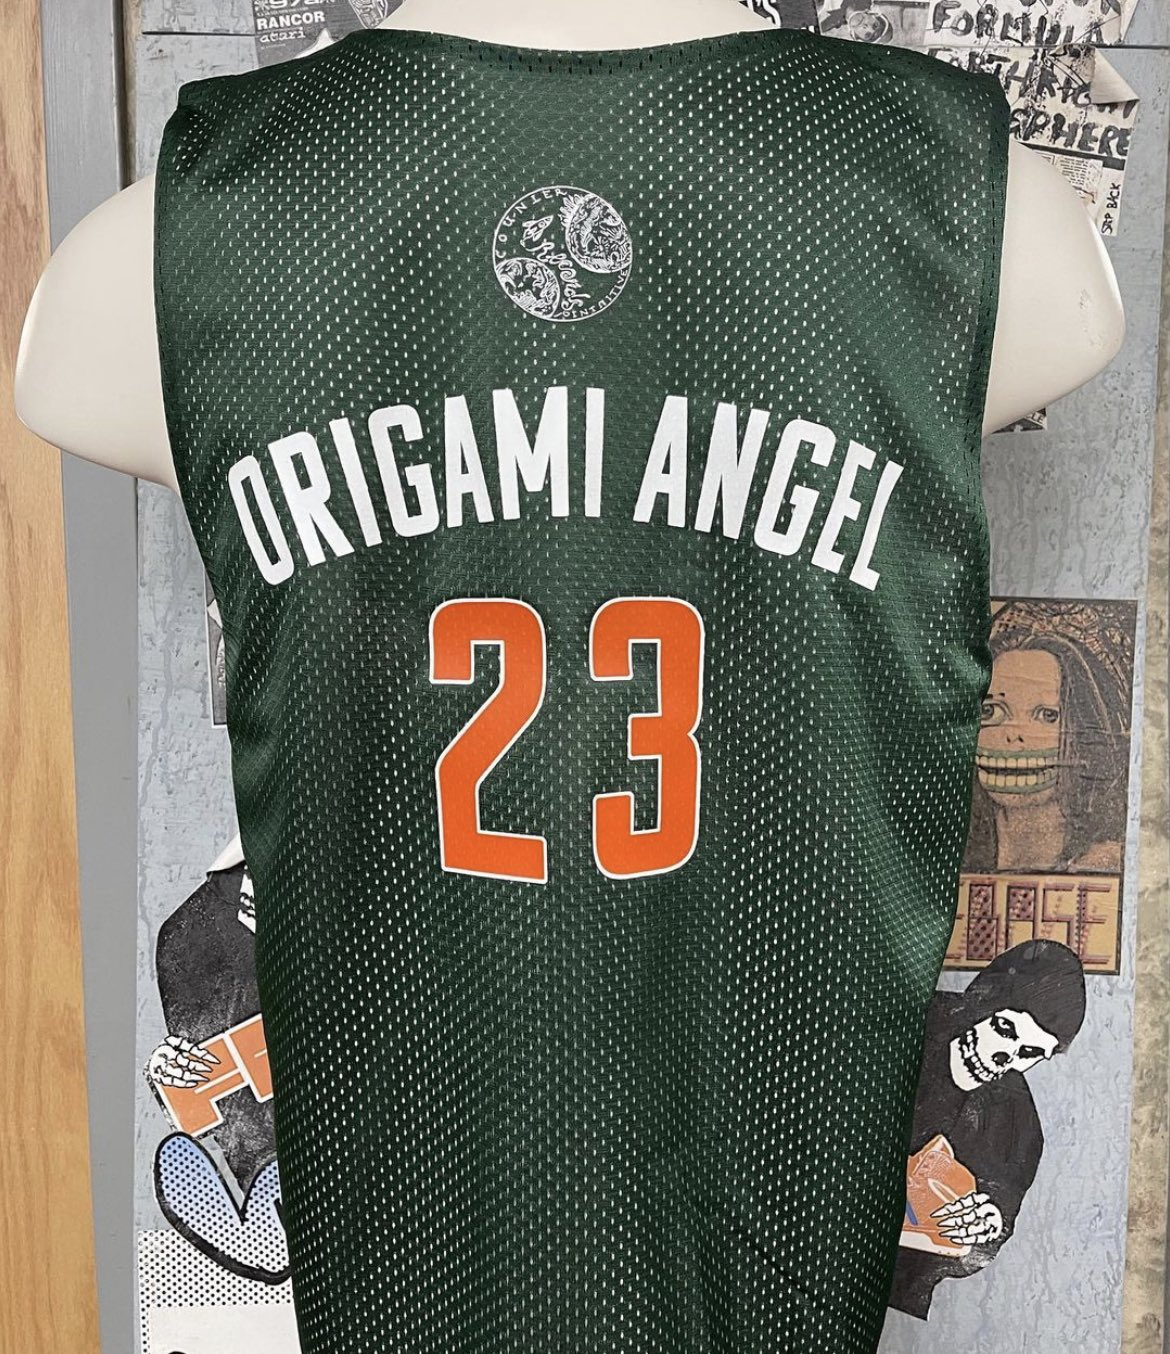 Origami Angel Jersey